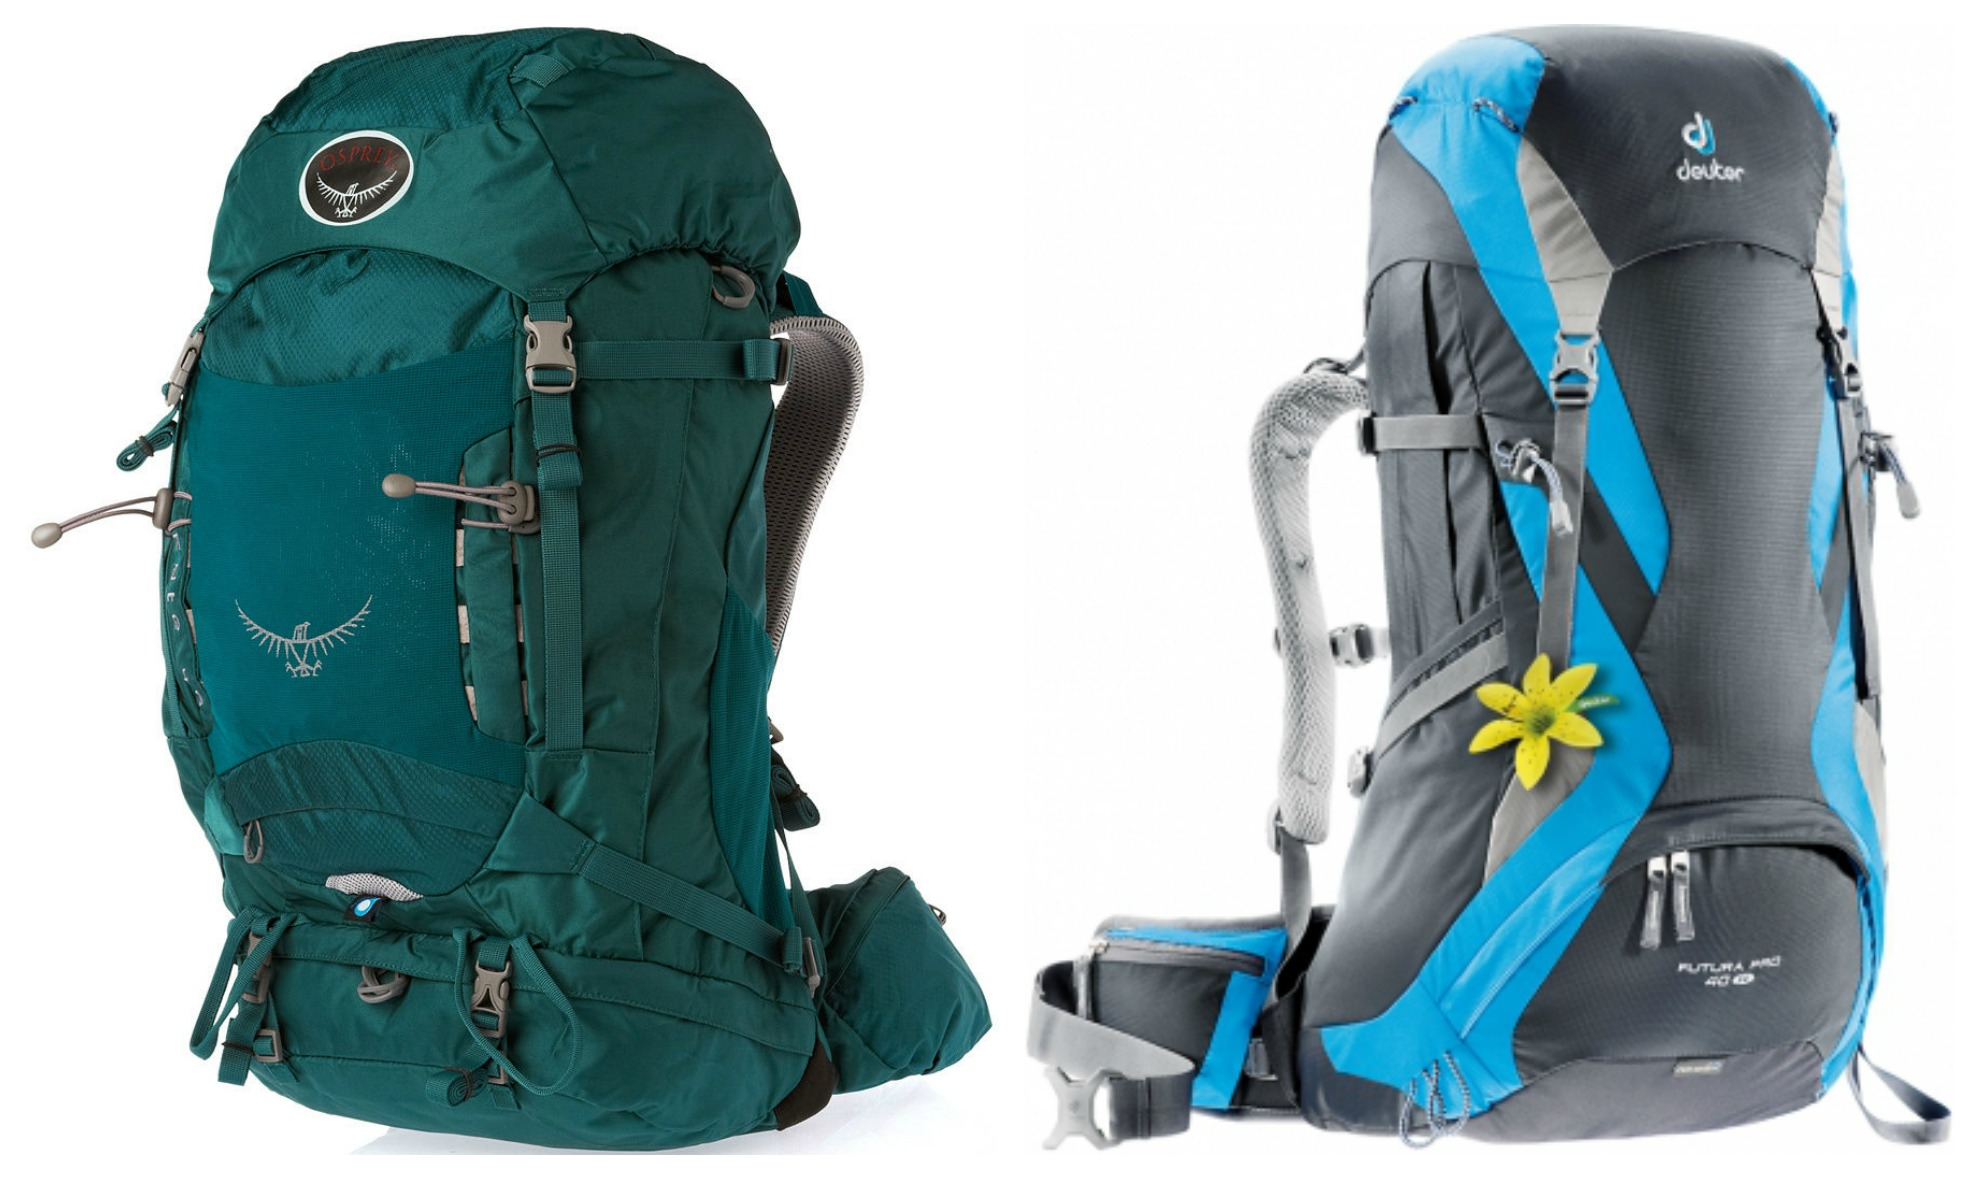 f46e88abbc37 How-to-Choose-the-Right-Backpack -A-weekend-in-the-hills-or-a-month-in-the-sun-travel-backpacks.jpg